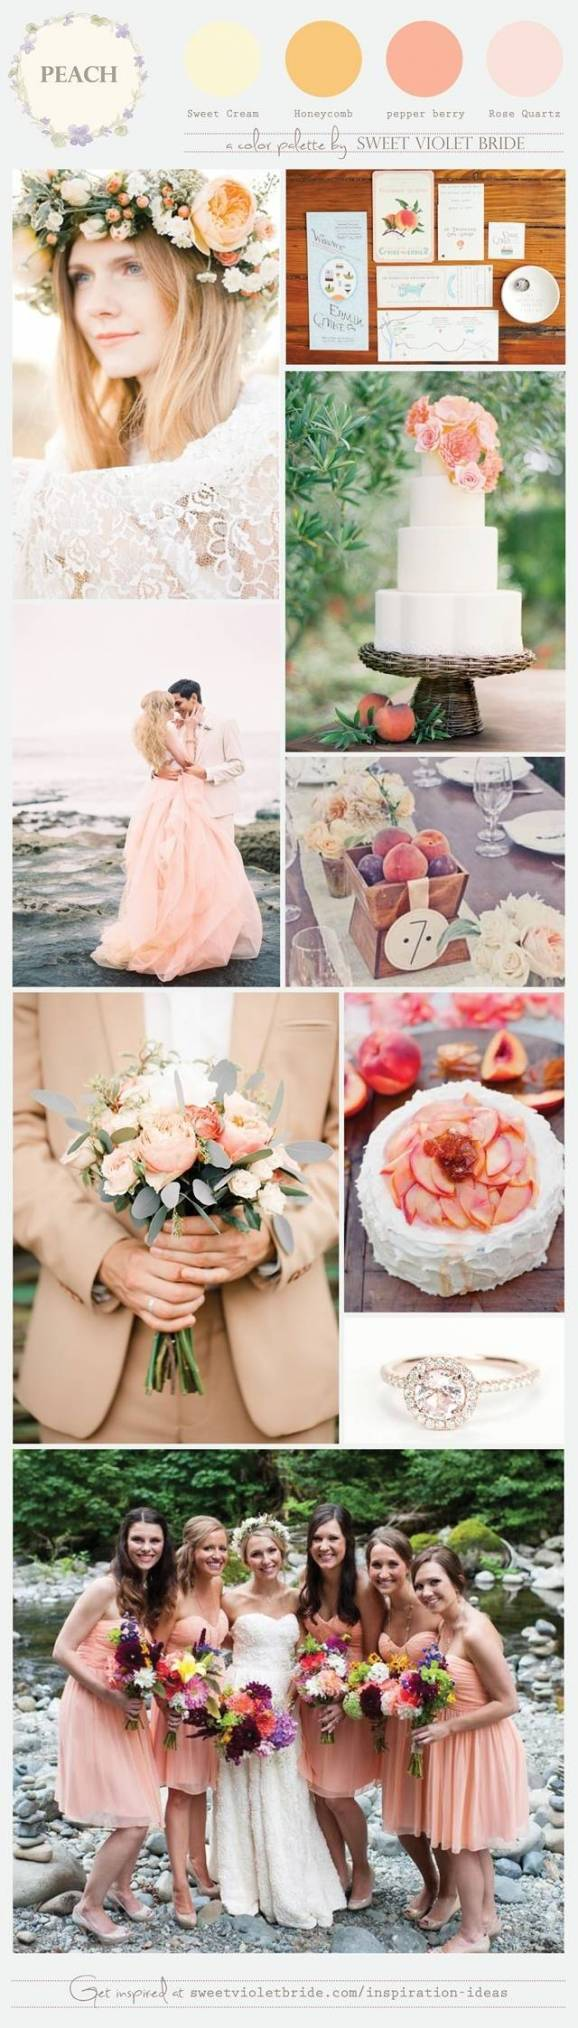 Wedding Color Palette: Peach